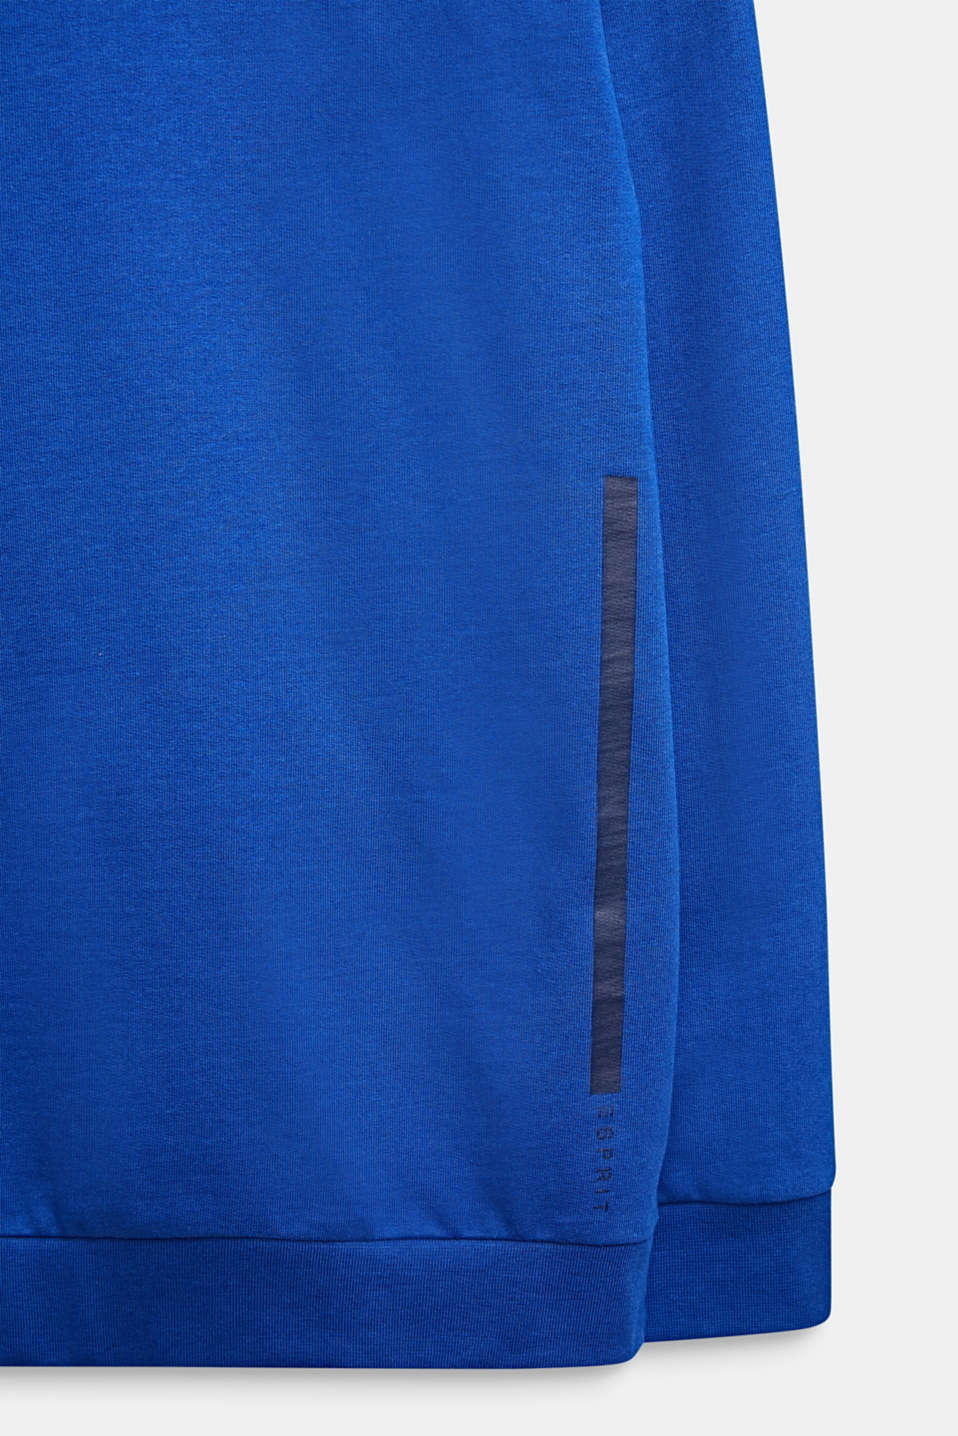 Sweatshirt with a print, 100% cotton, LCINFINITY BLUE, detail image number 2